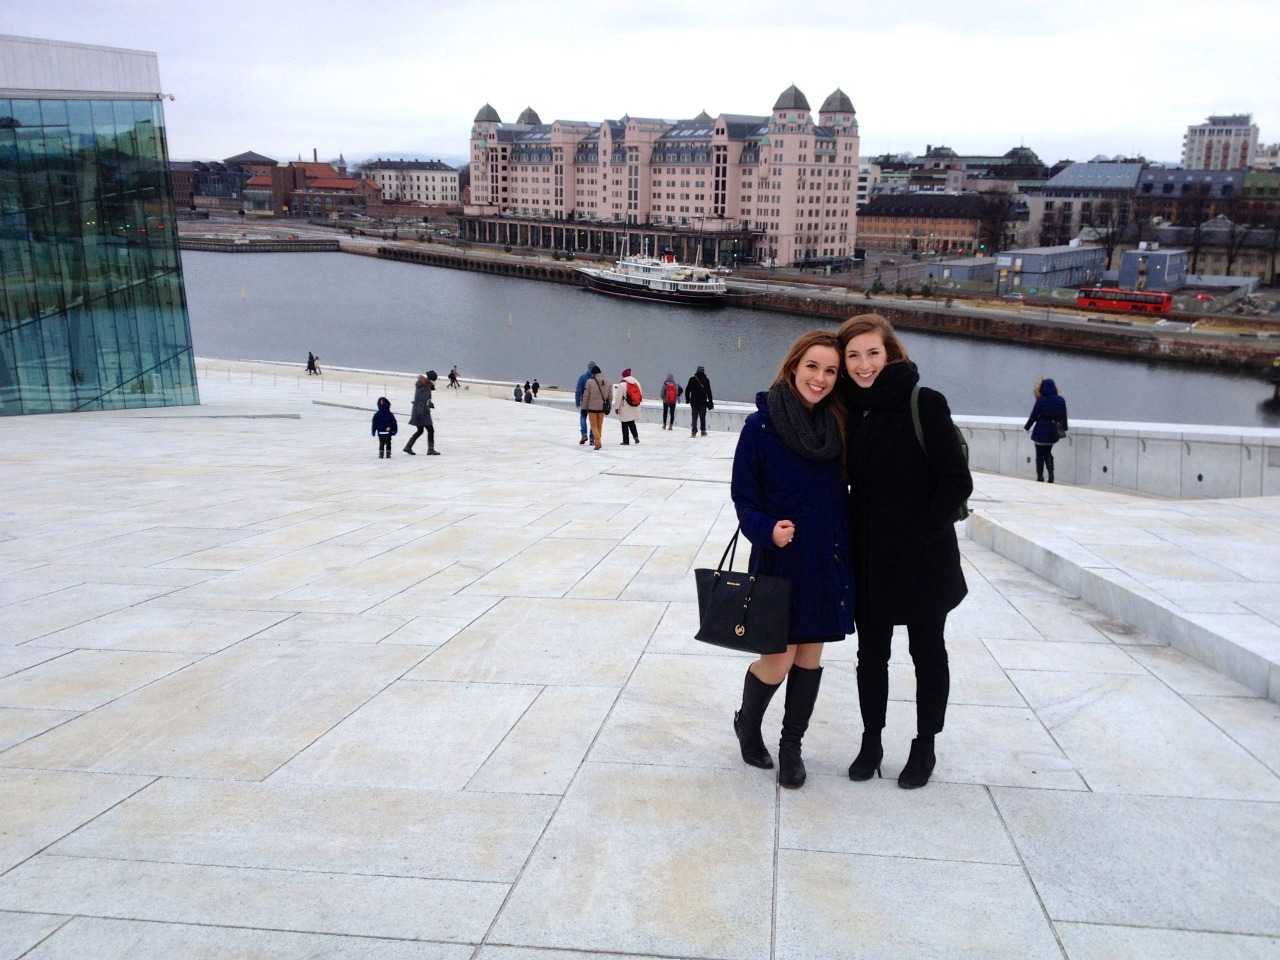 Lindita Capric '15 and Kyla Korvne '15 were recognized with awards for their excellent diplomatic skills in the 2015 OsloMUN conference in Norway.